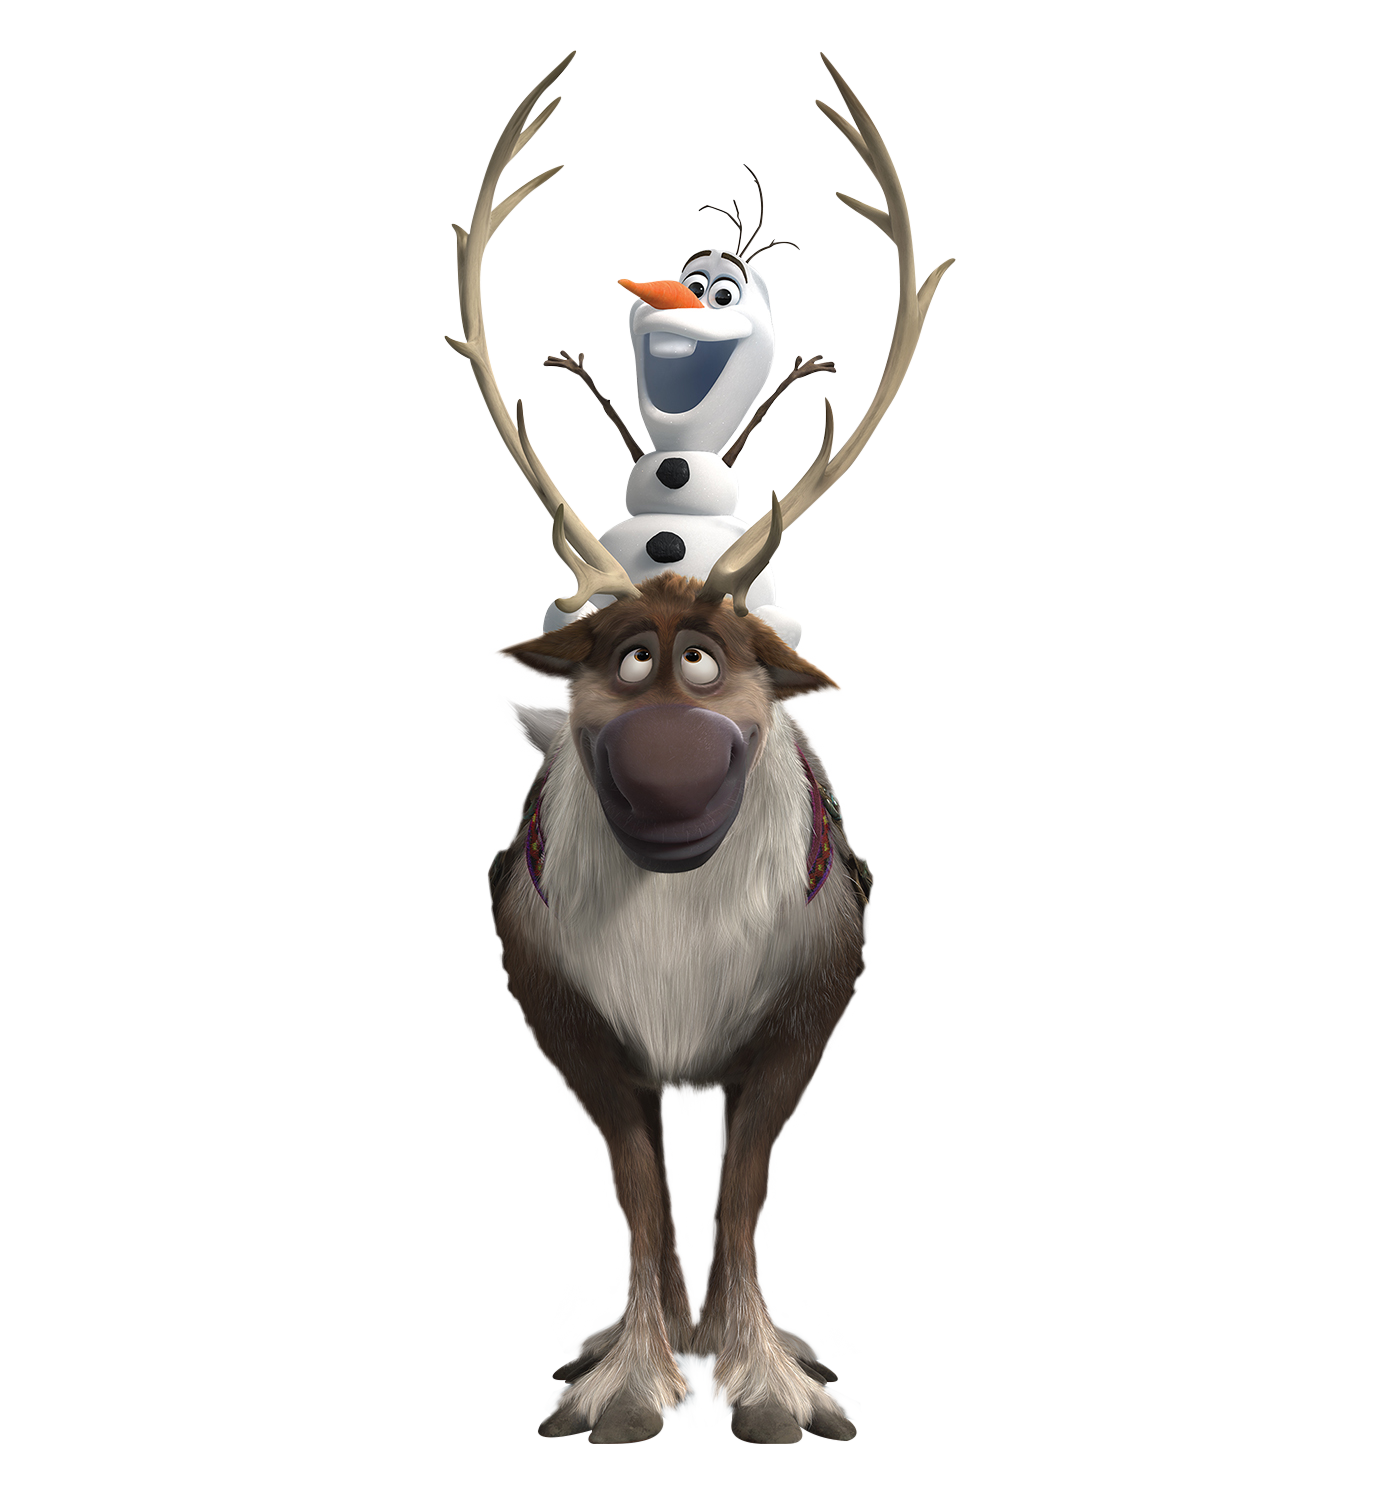 disney frozen sven drawing - photo #33